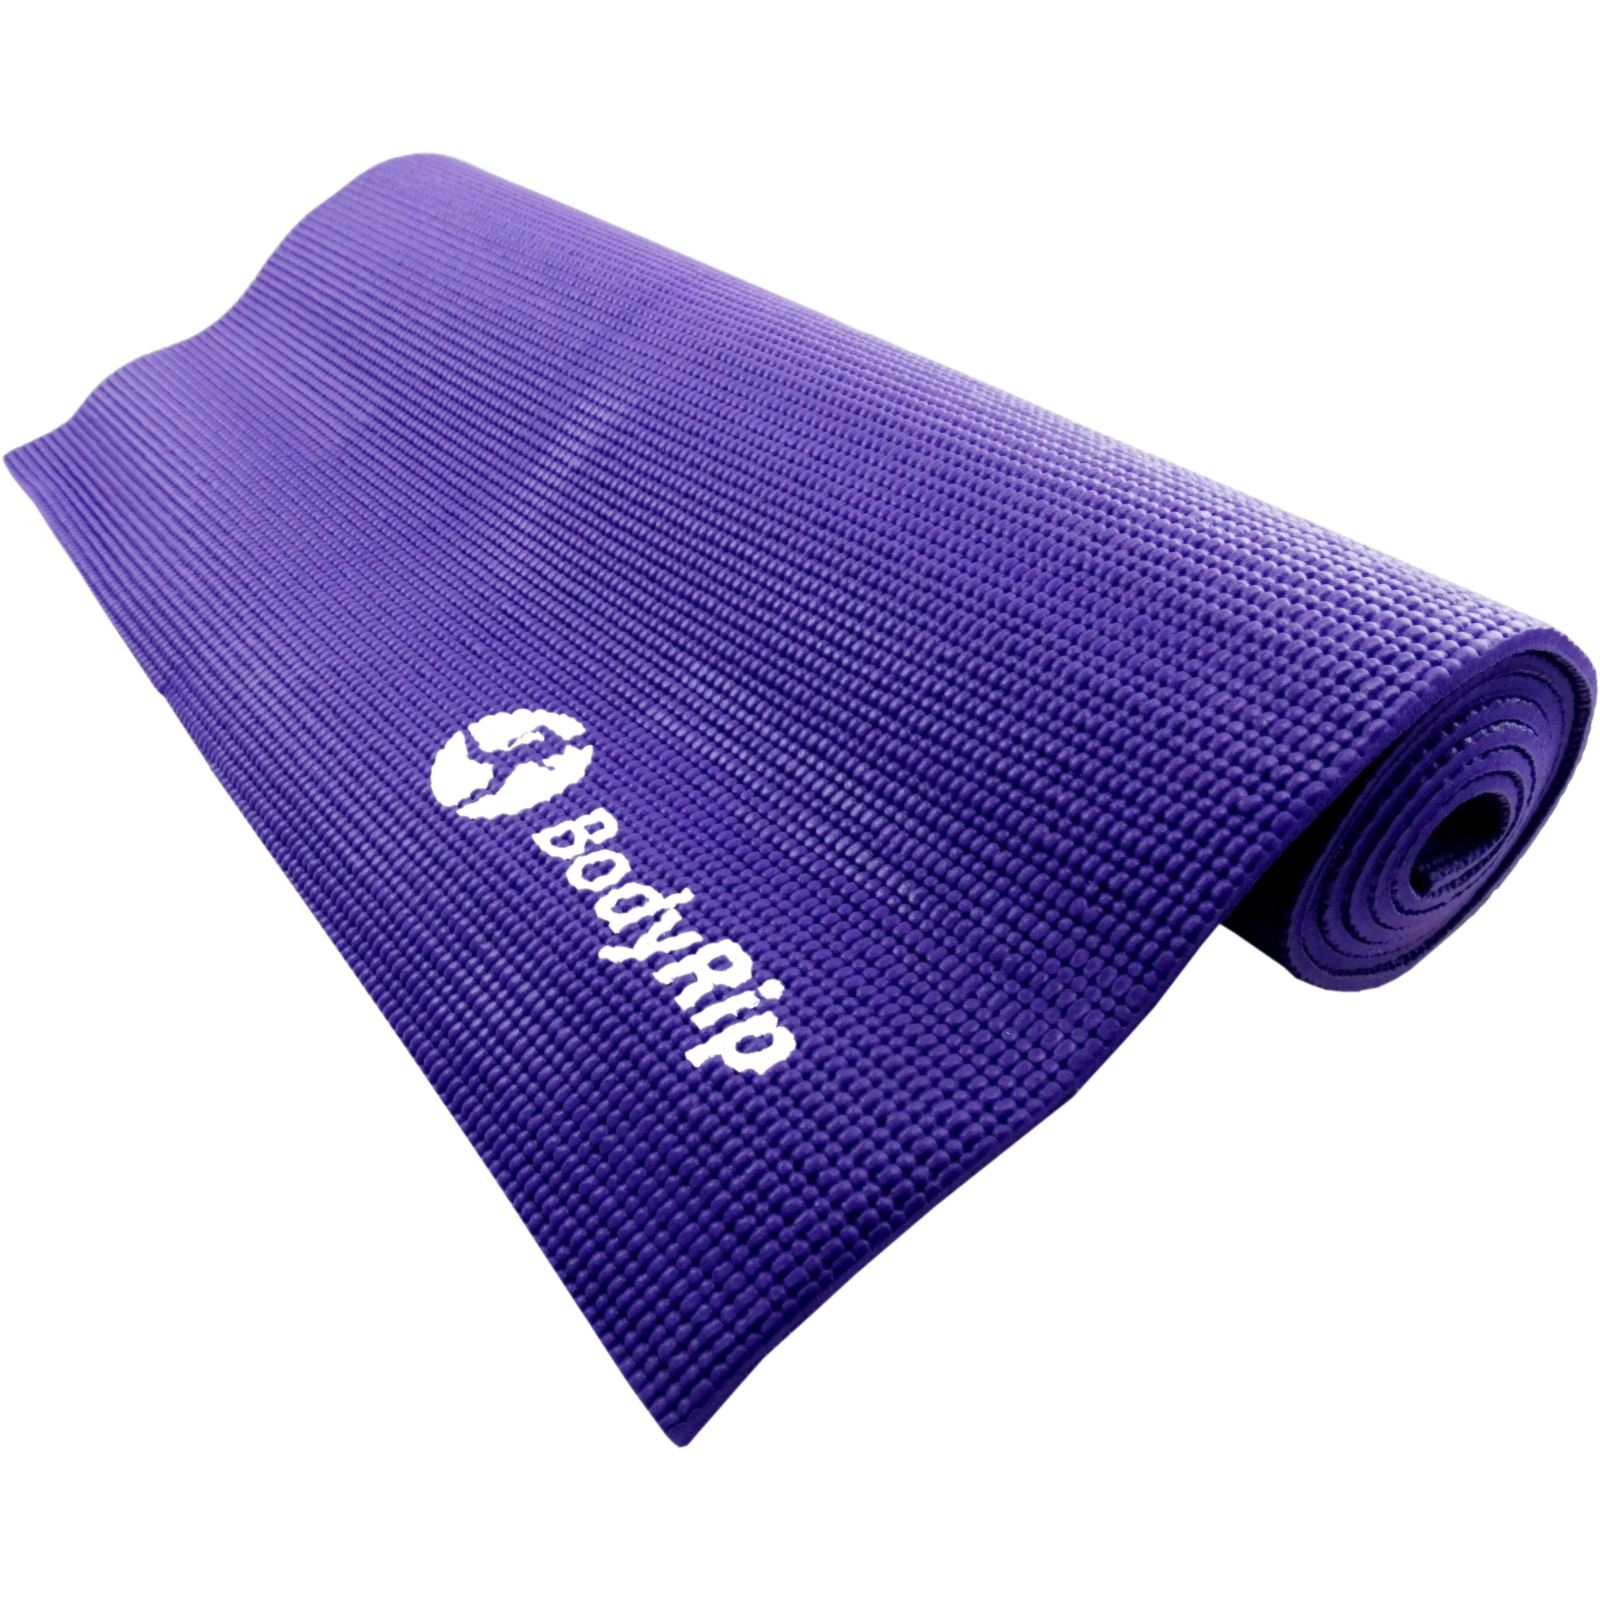 BodyRip PURPLE THICK FOAM YOGA PILATES GYM MAT 6mm FITNESS